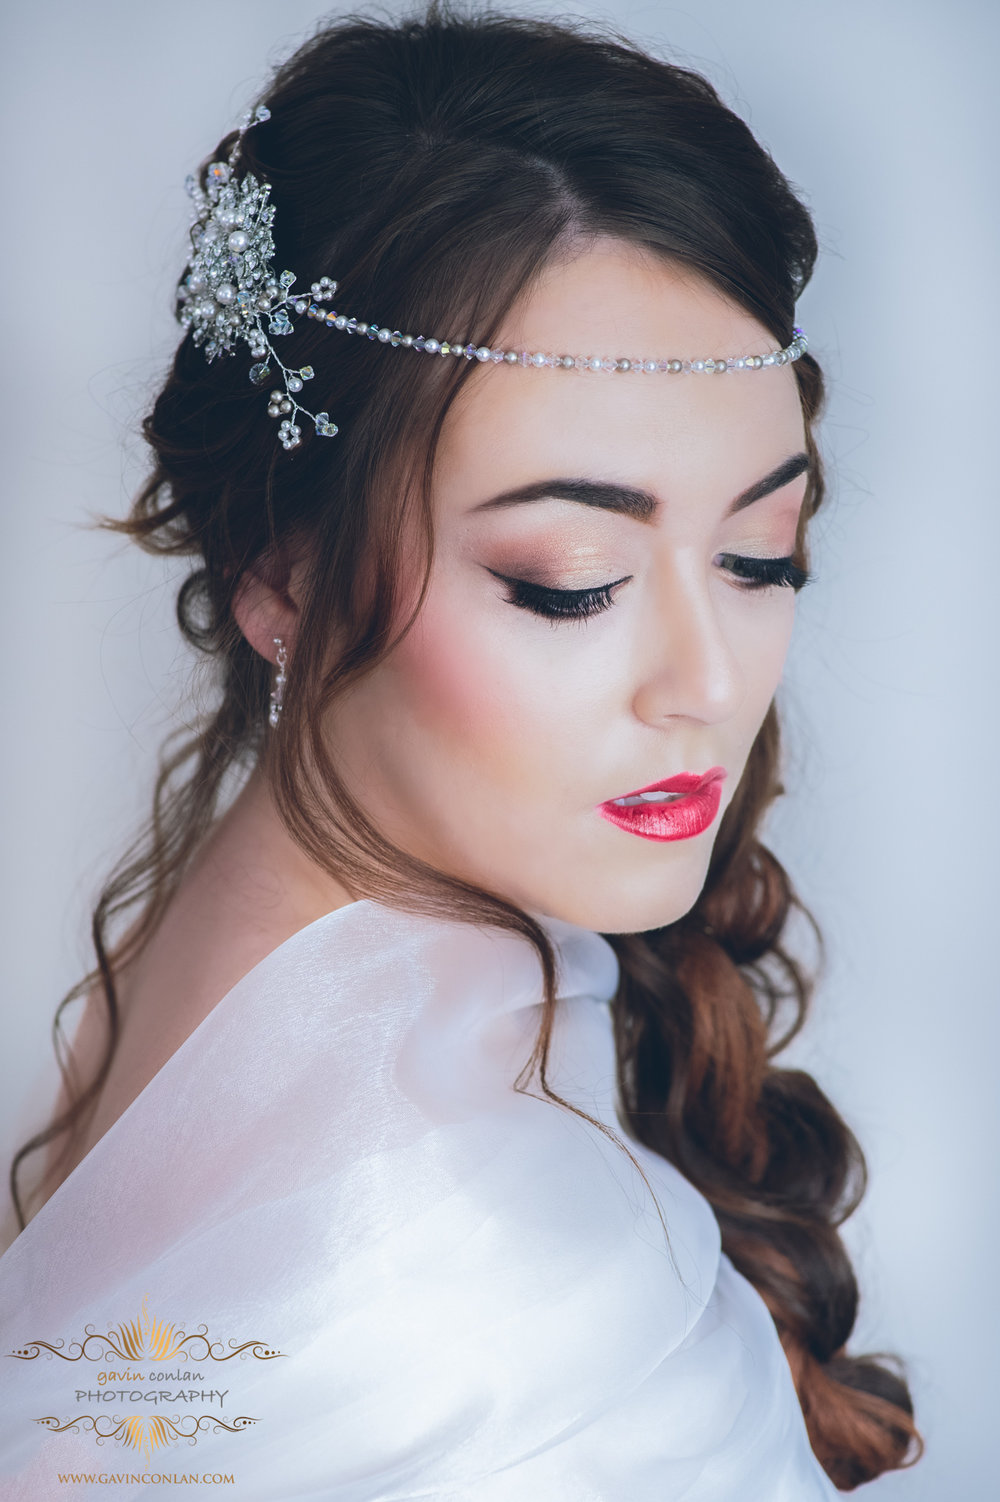 creative-bridal-hair-make-up-jewellery-photo-shoot-gavinconlanphotography-08